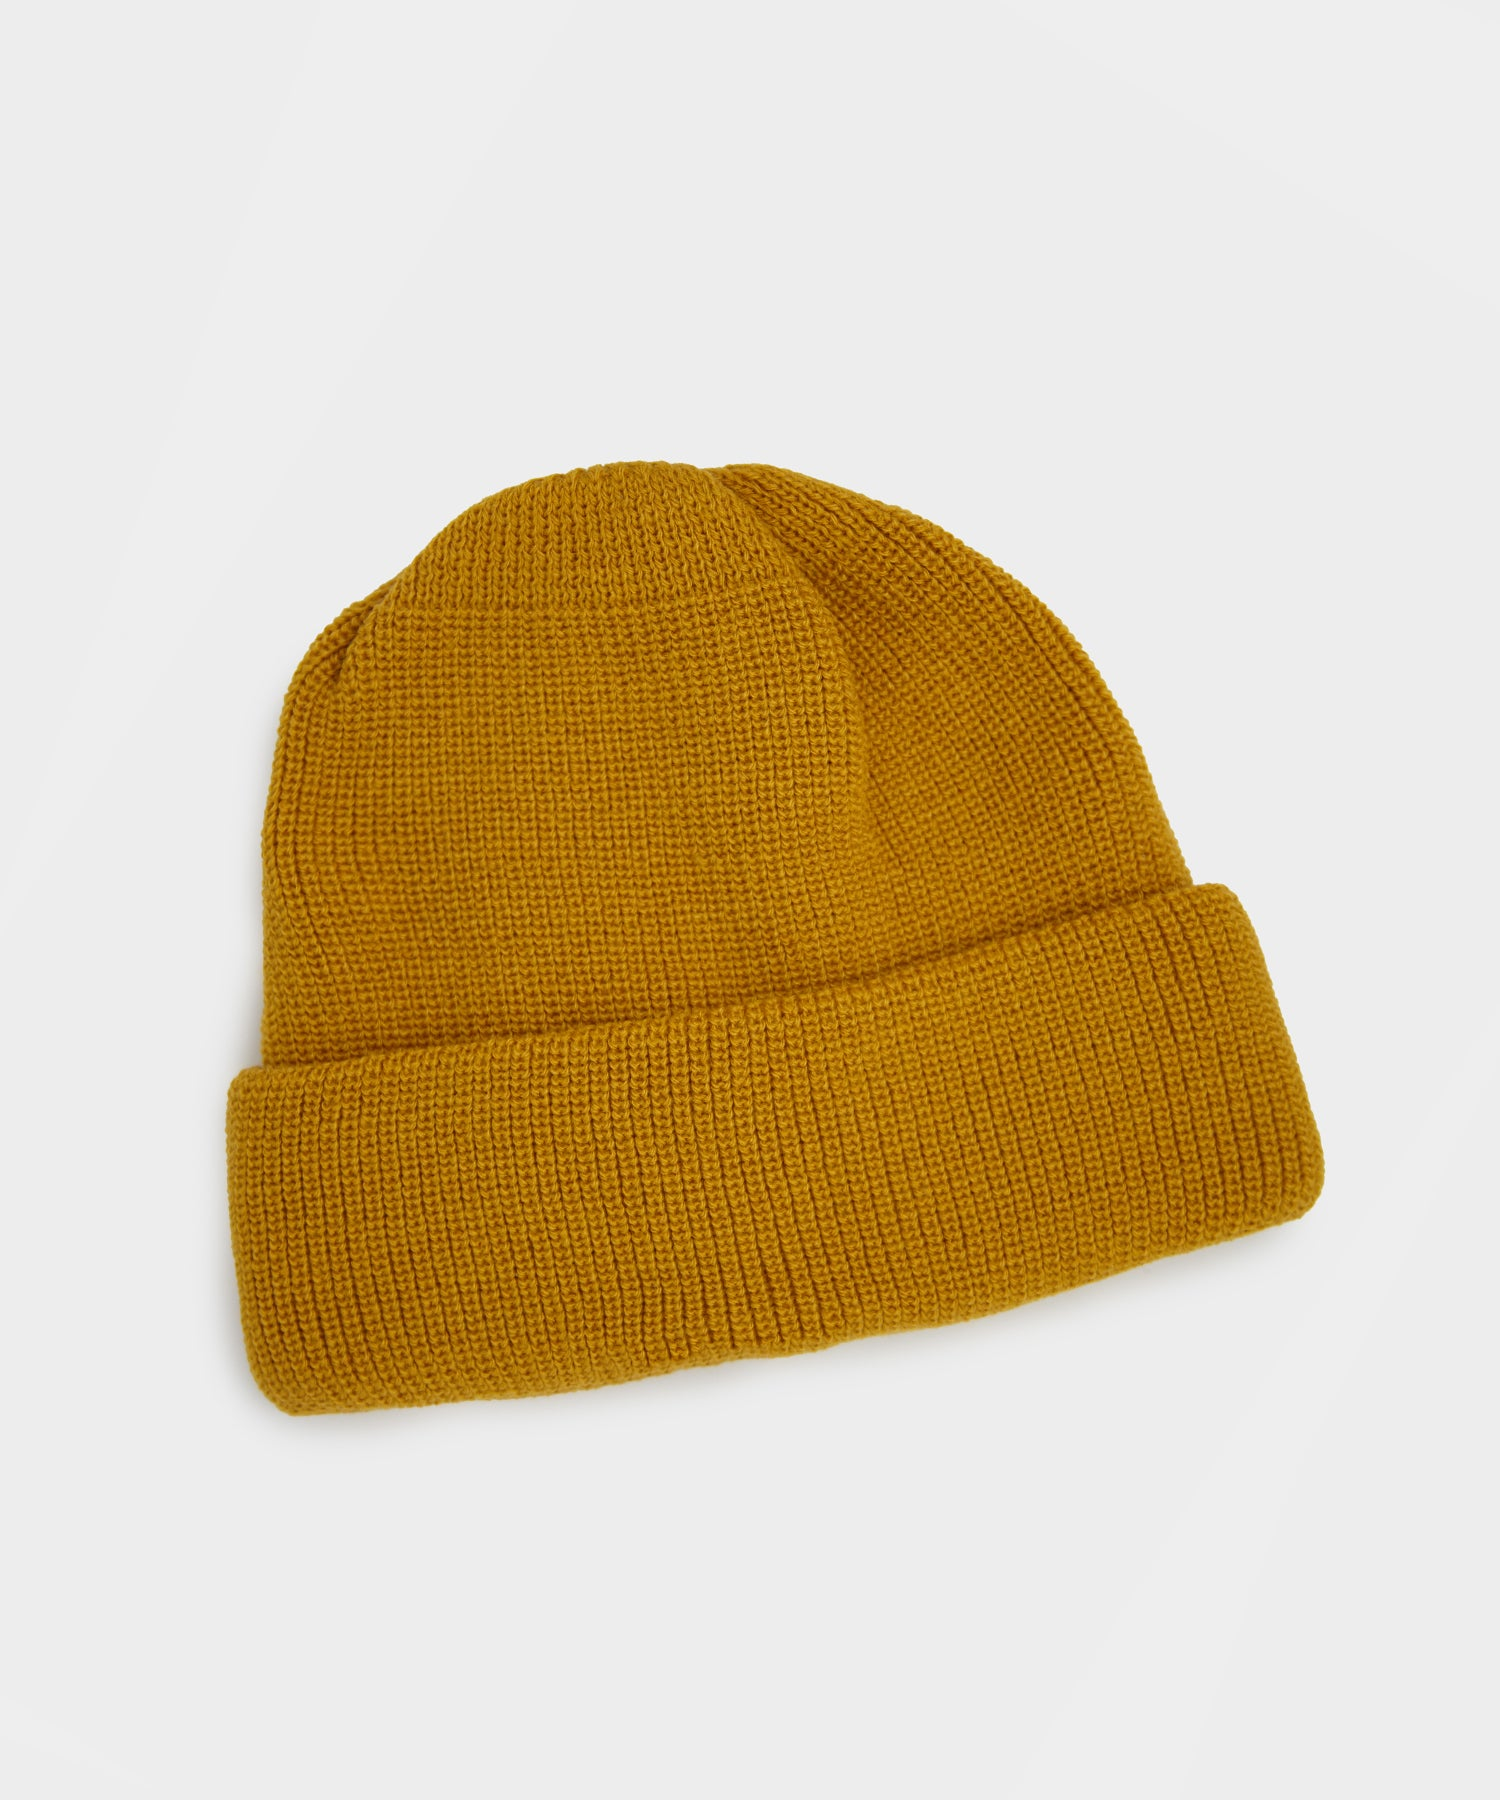 RoToTo Bulky Watch Cap in Yellow